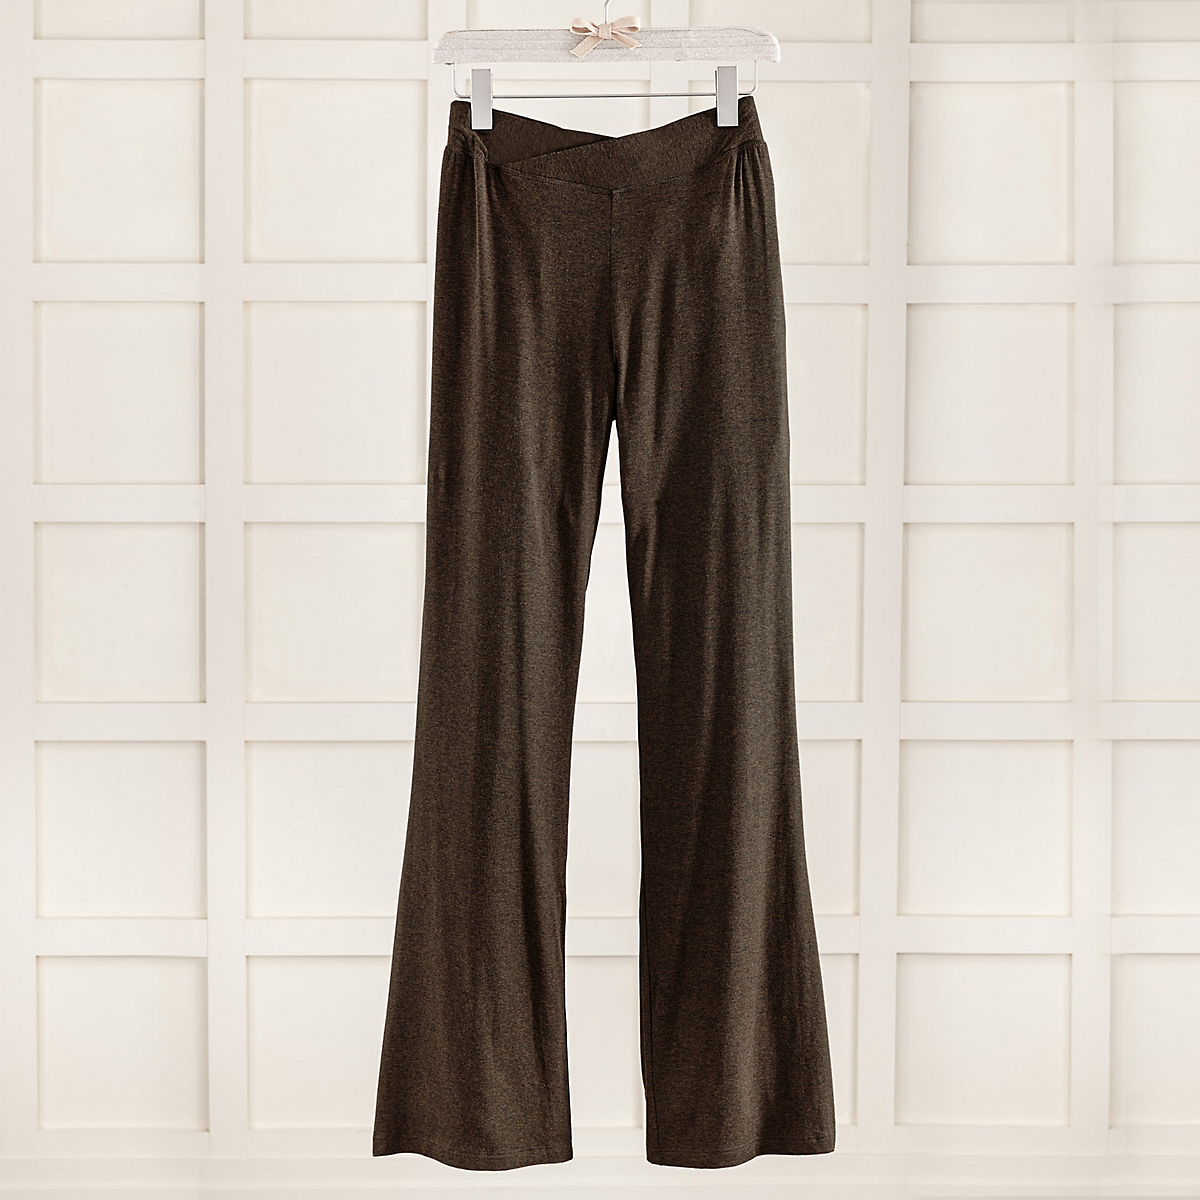 Addie Wide-Leg Pants